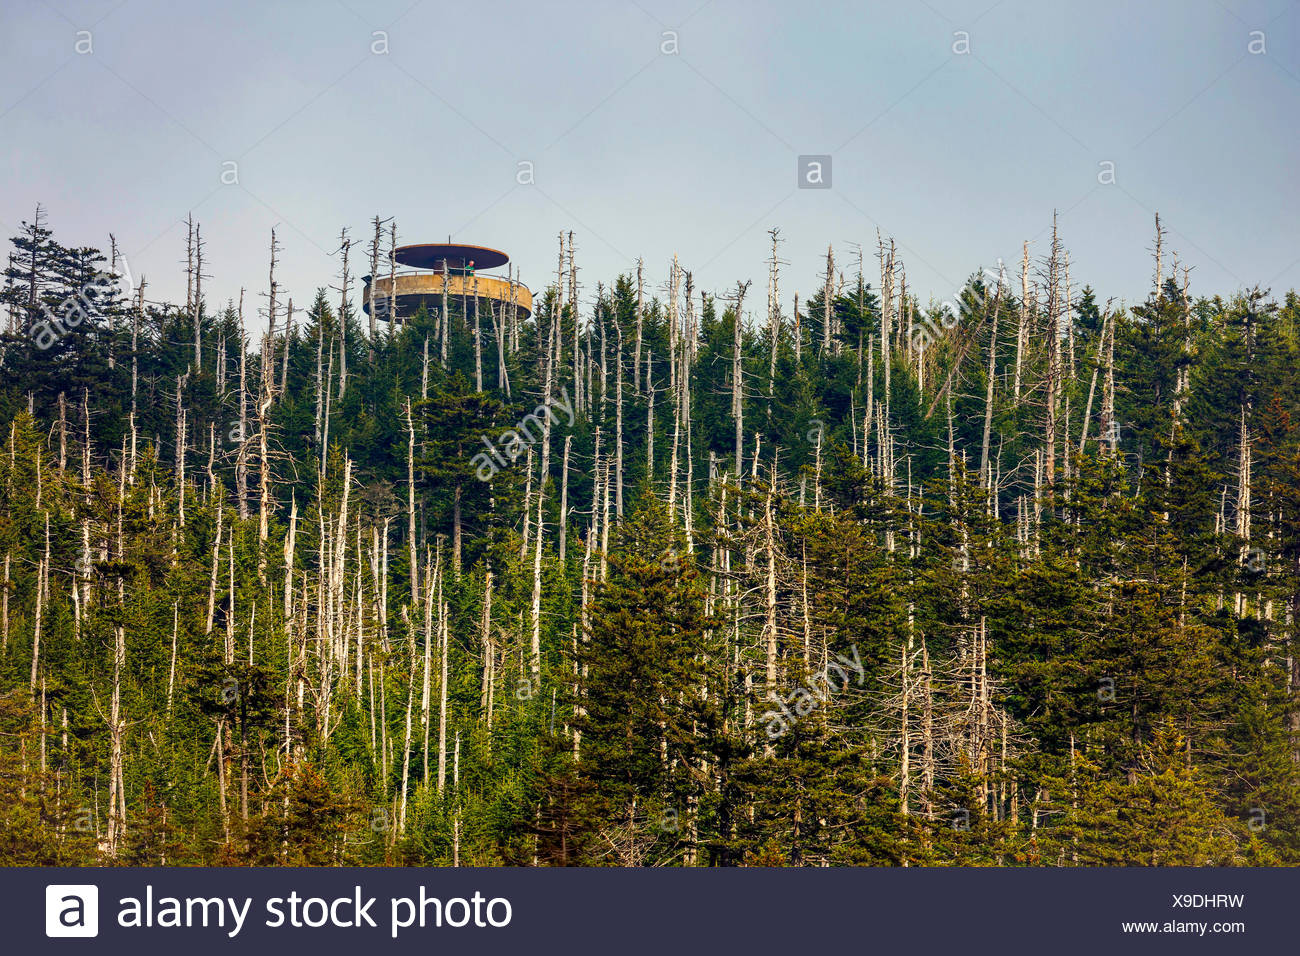 lookout tower in a conifer forest with coniferous forest, USA, Tennessee, Great Smoky Mountains National Park - Stock Image